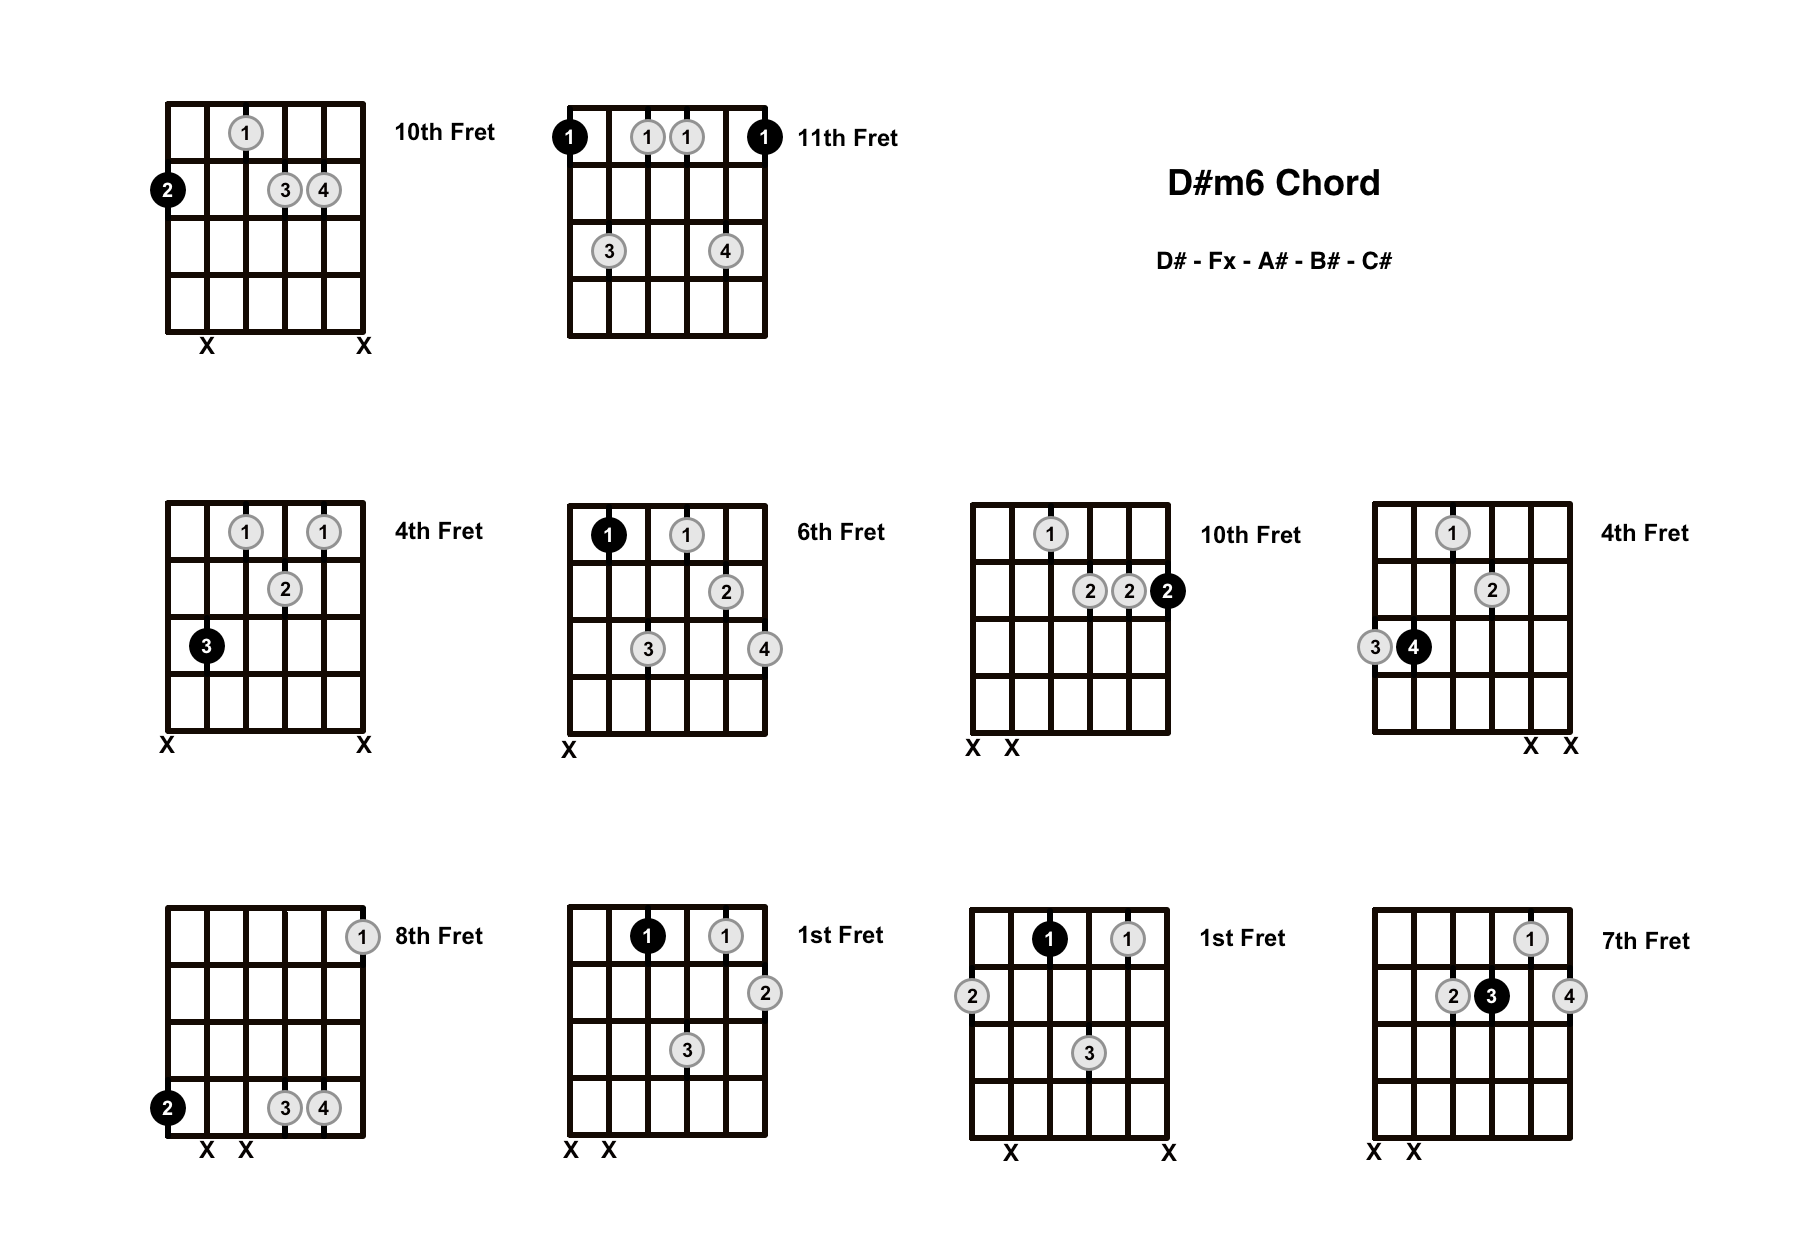 D#m6 Chord On The Guitar (D Sharp minor 6) – Diagrams, Finger Positions and Theory